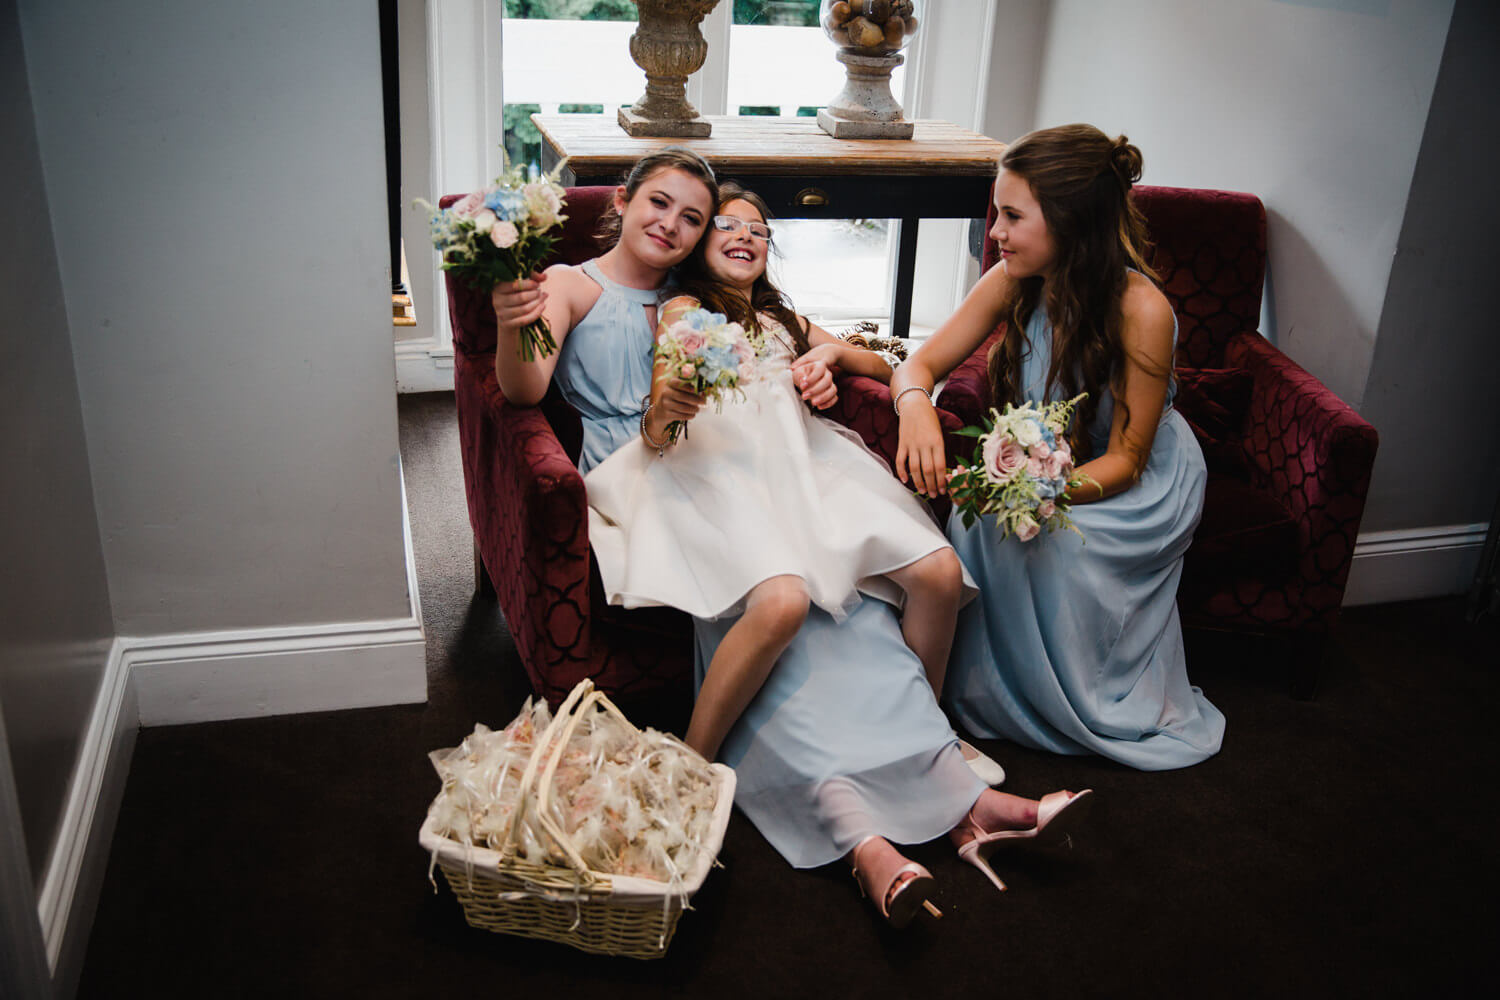 bridesmaids lounge on chairs in hallway